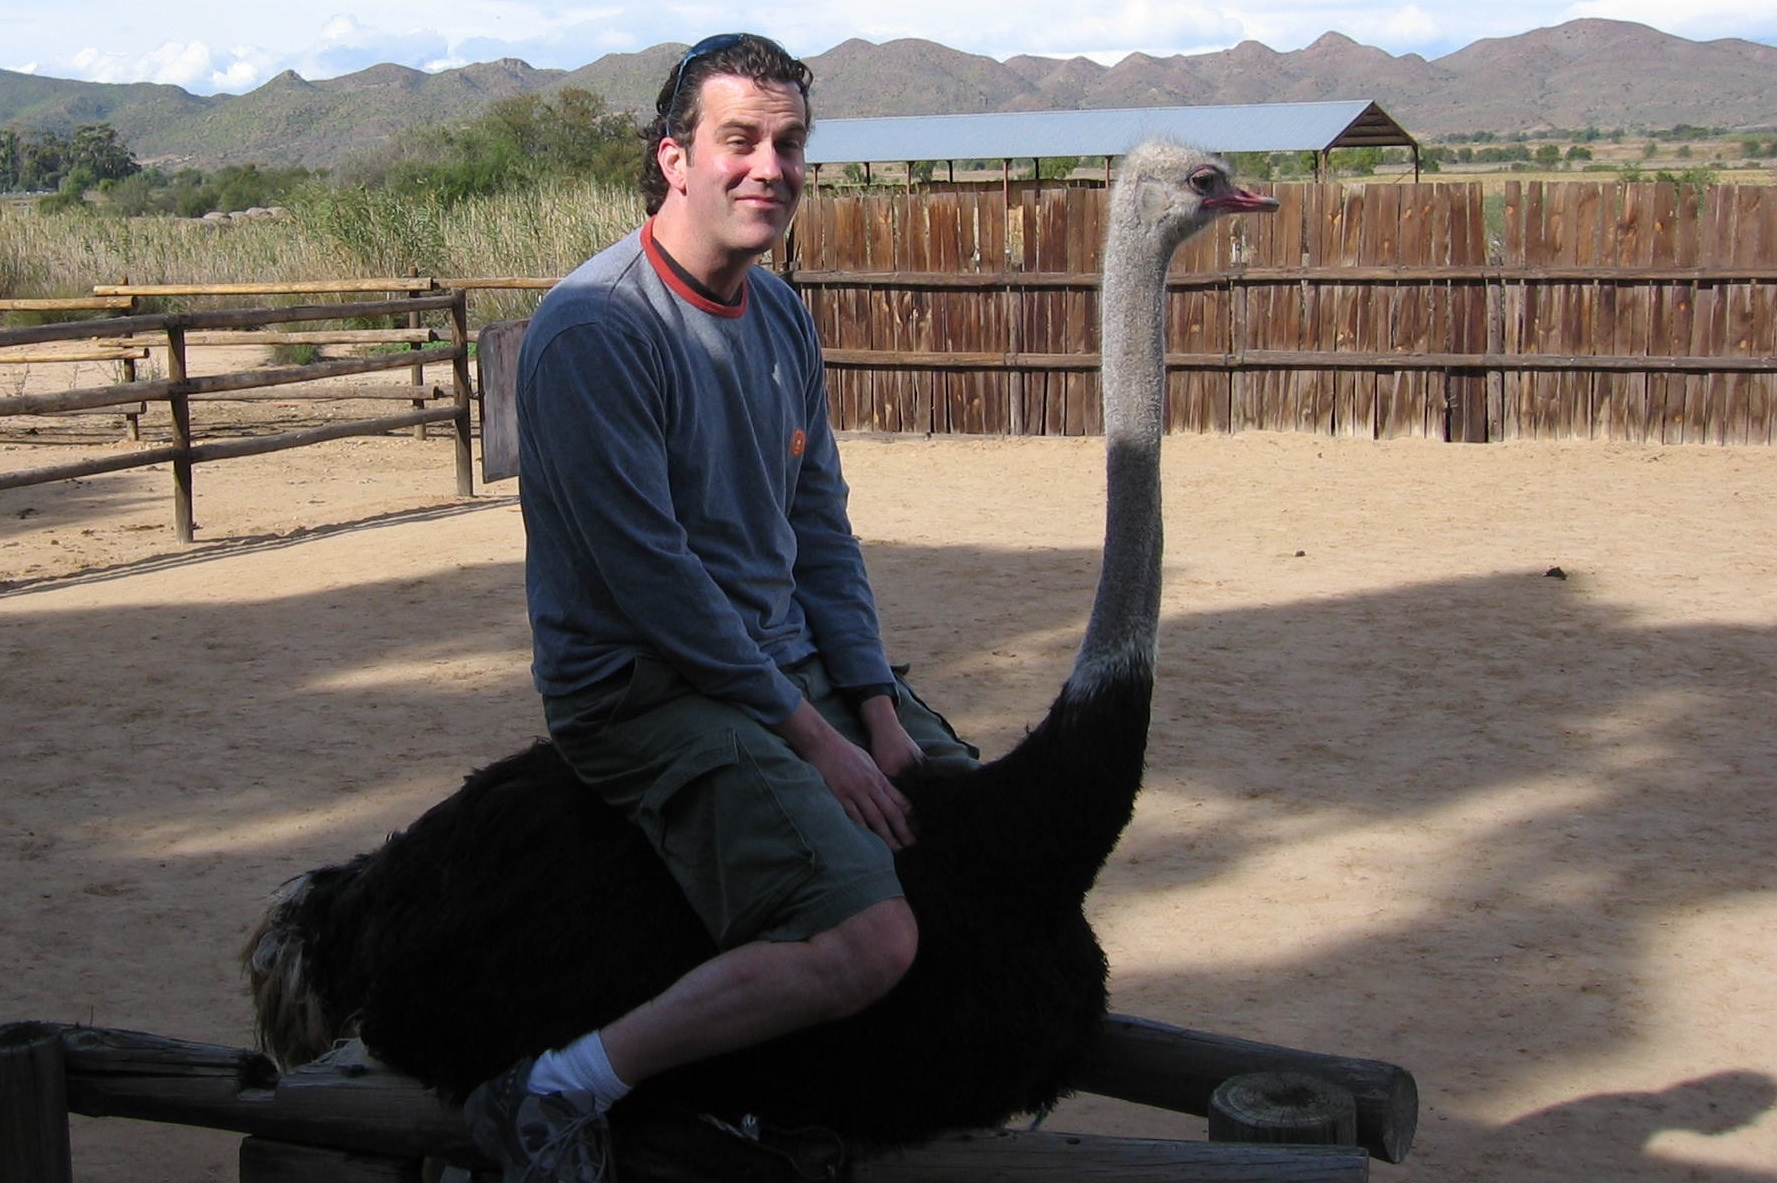 Maybe it's always been a goal of yours to ride an ostrich?